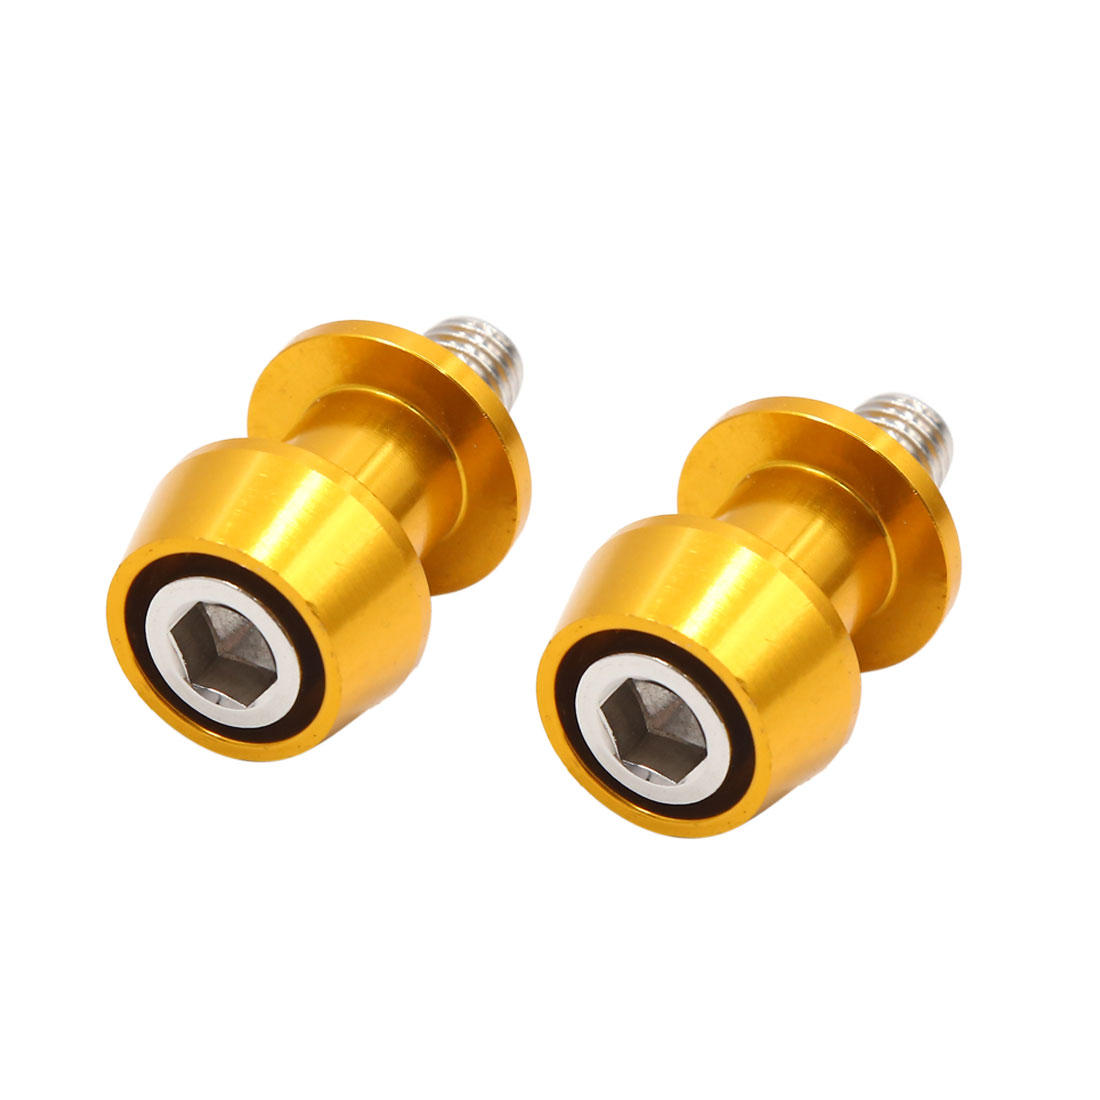 2pcs 10mm Thread Dia Metal Motorcycle Swingarm Stand Sliders Spools Gold Tone